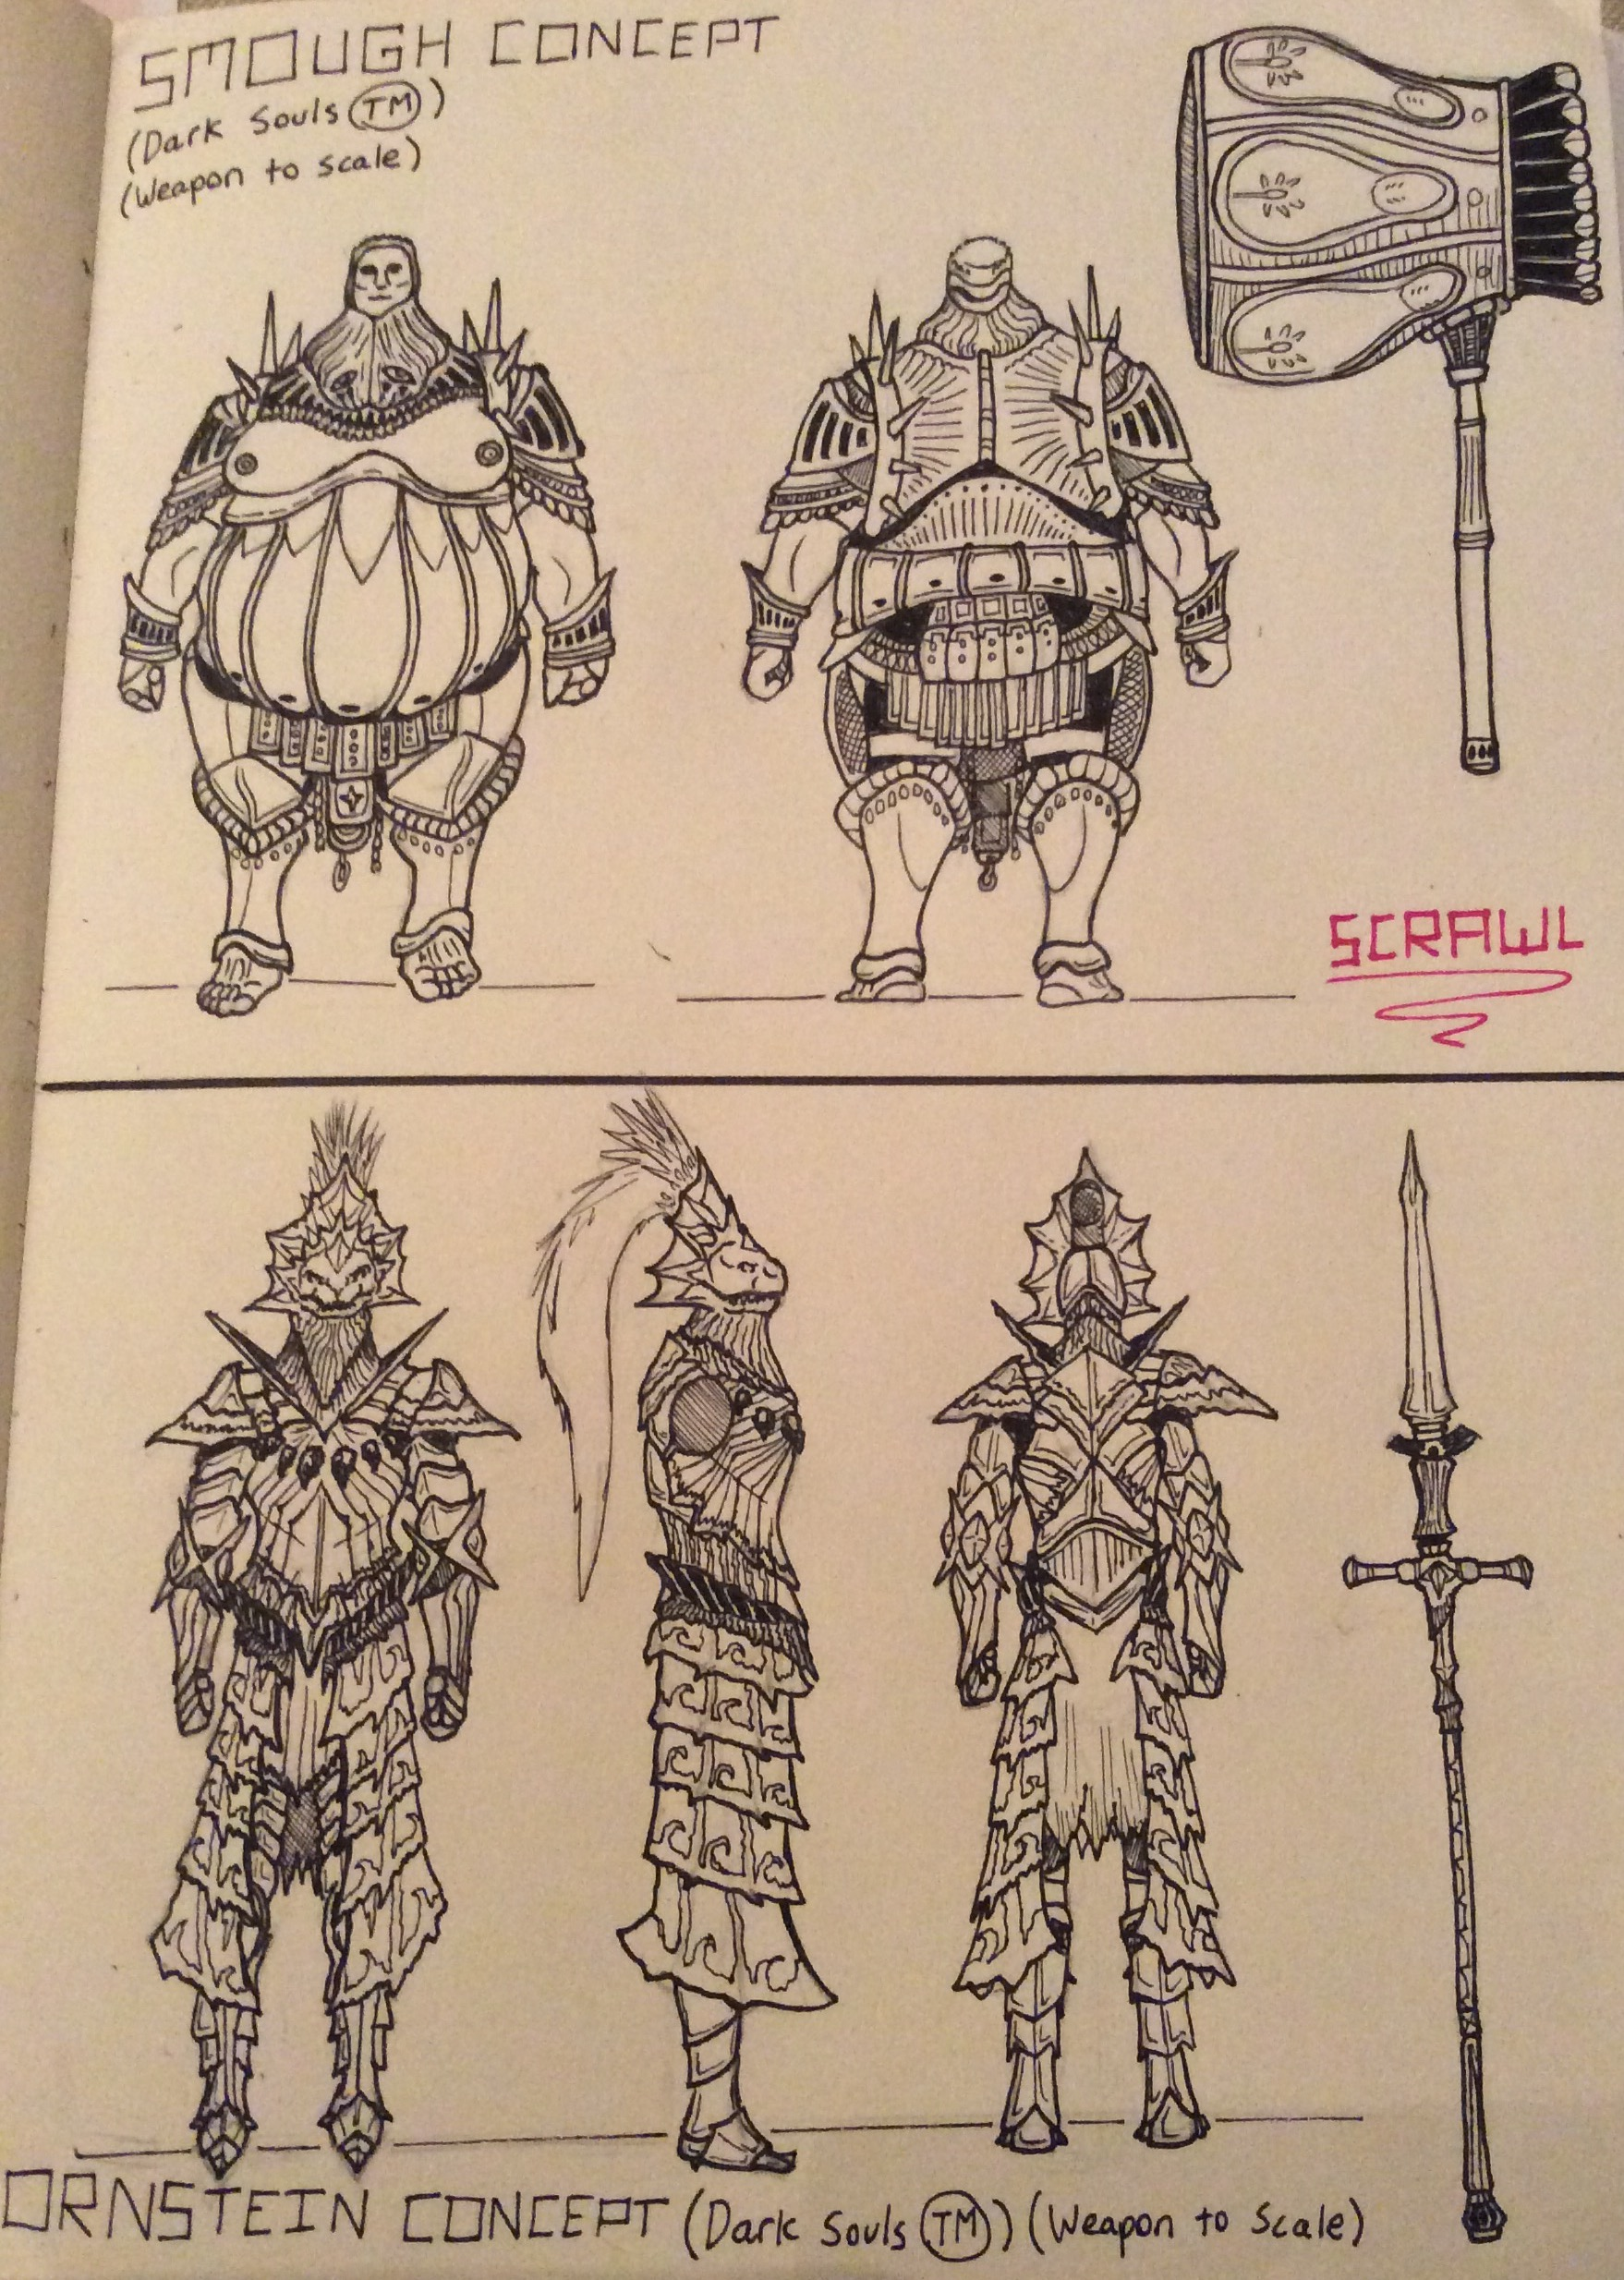 Smough and Ornstein Concepts